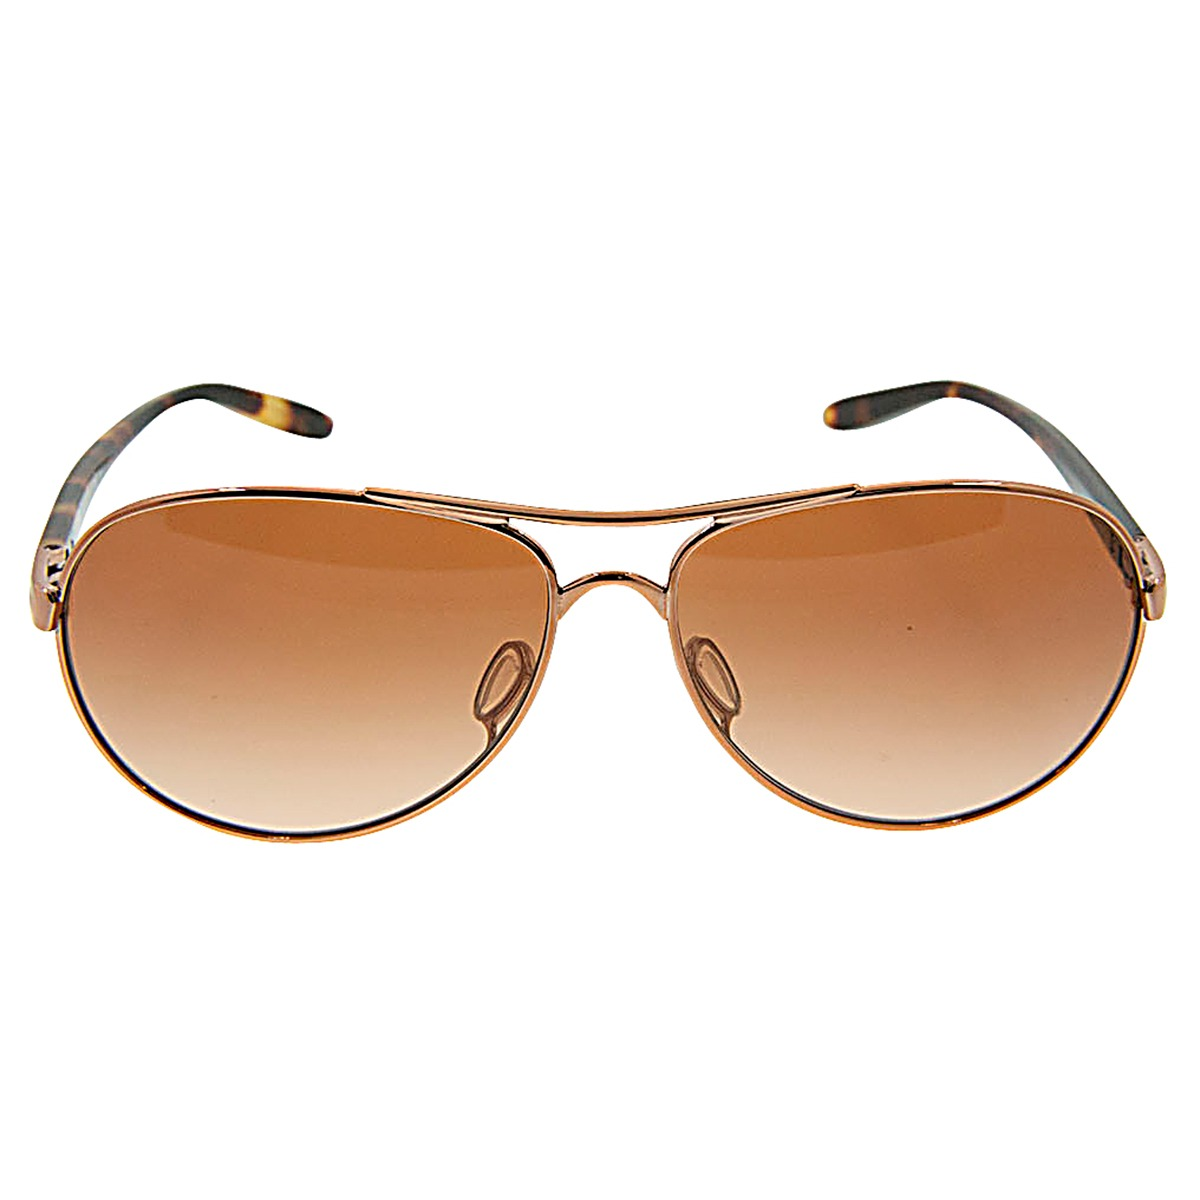 de7106f5c1 Details about New Authentic Oakley Feedback Sunglasses Rose Gold with VR50  Brown Gradient